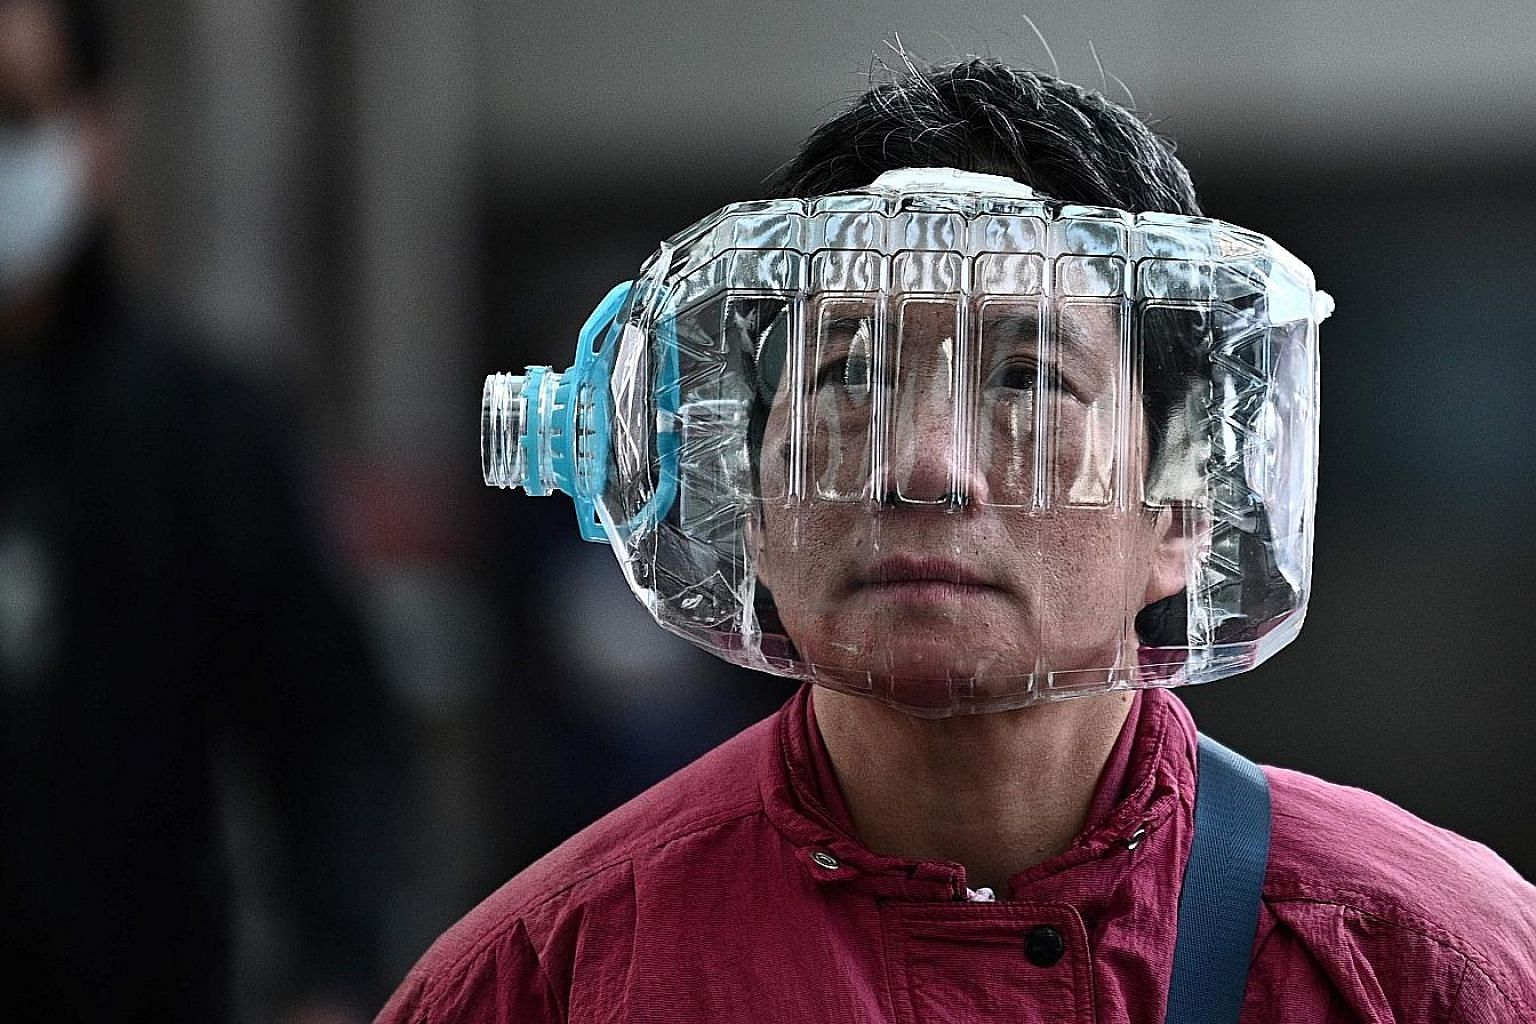 A pedestrian in Hong Kong uses a plastic water bottle with a cutout (above) for protection following the virus outbreak in Wuhan while a woman wears a mask in Shanghai.